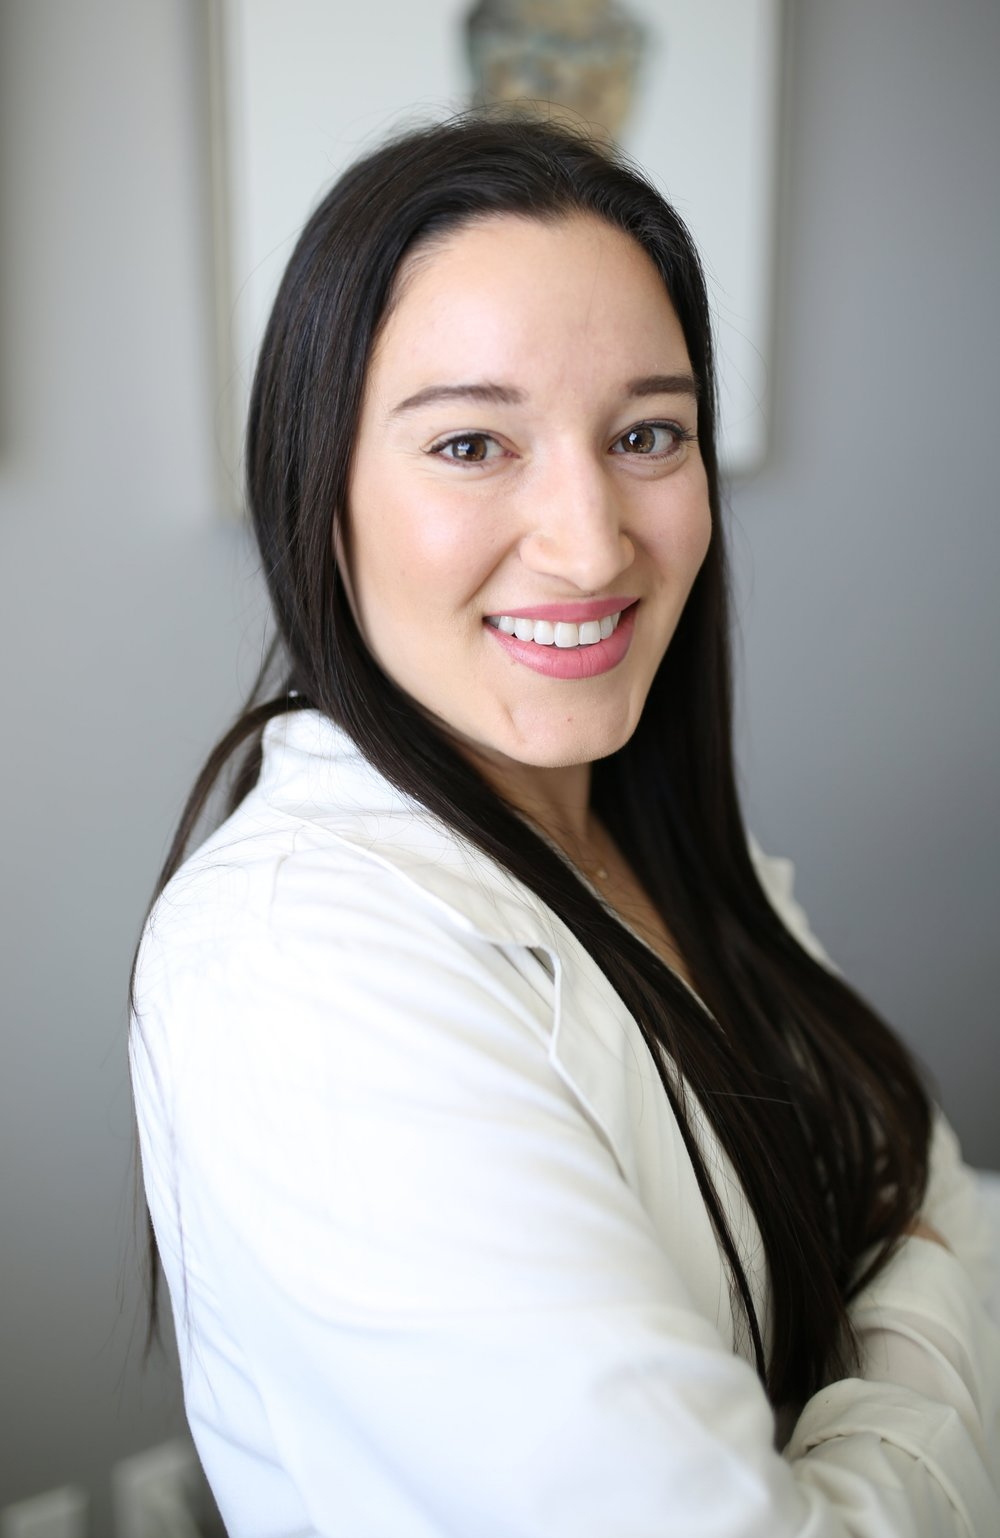 Rosemarie Gonzales, DPT Sarton Physical Therapy Pelvic Floor Physical Therapy